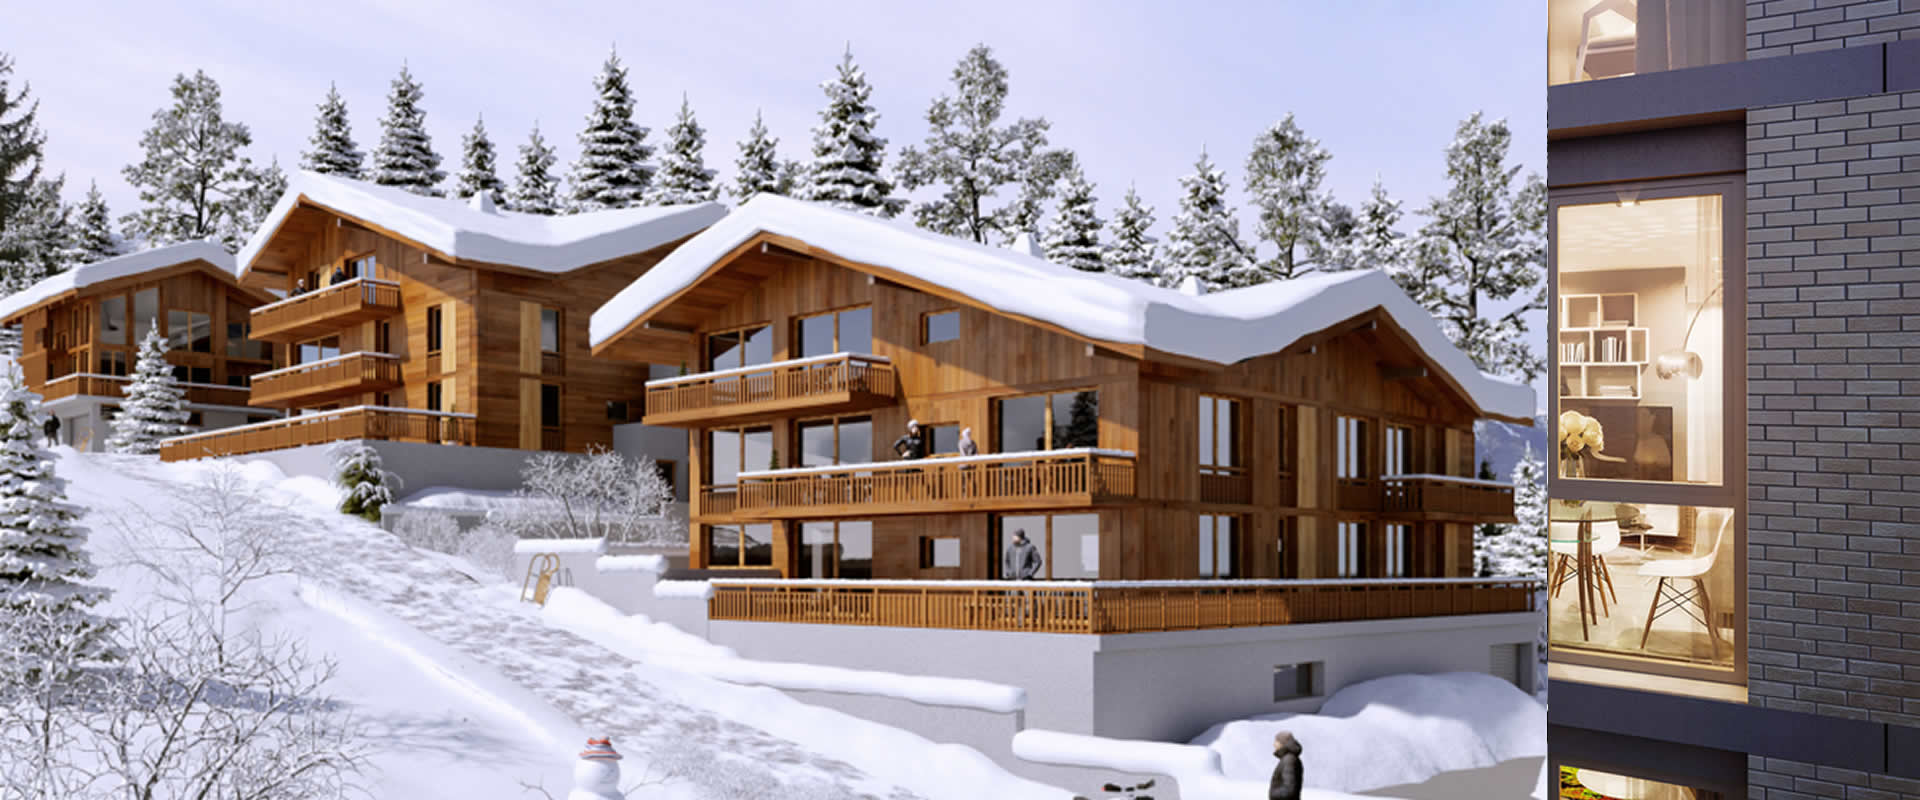 PREMIERES LOGES, Combloux, Ski Apartments - Location: Combloux , Mont BlancIllustrations used are non contractual*Guide Price From: Studios from €130,000 1 Bed from €220,0002 Bed from €350,0003 Bed from €488,500Type: Studios and ApartmentsPremier Ski LodgeHow many residences allow you to wake up to a view of Mont Blanc every morning? We are pleased to bring Premières Loges, a residence in an exceptional location. Combloux, nicknamed